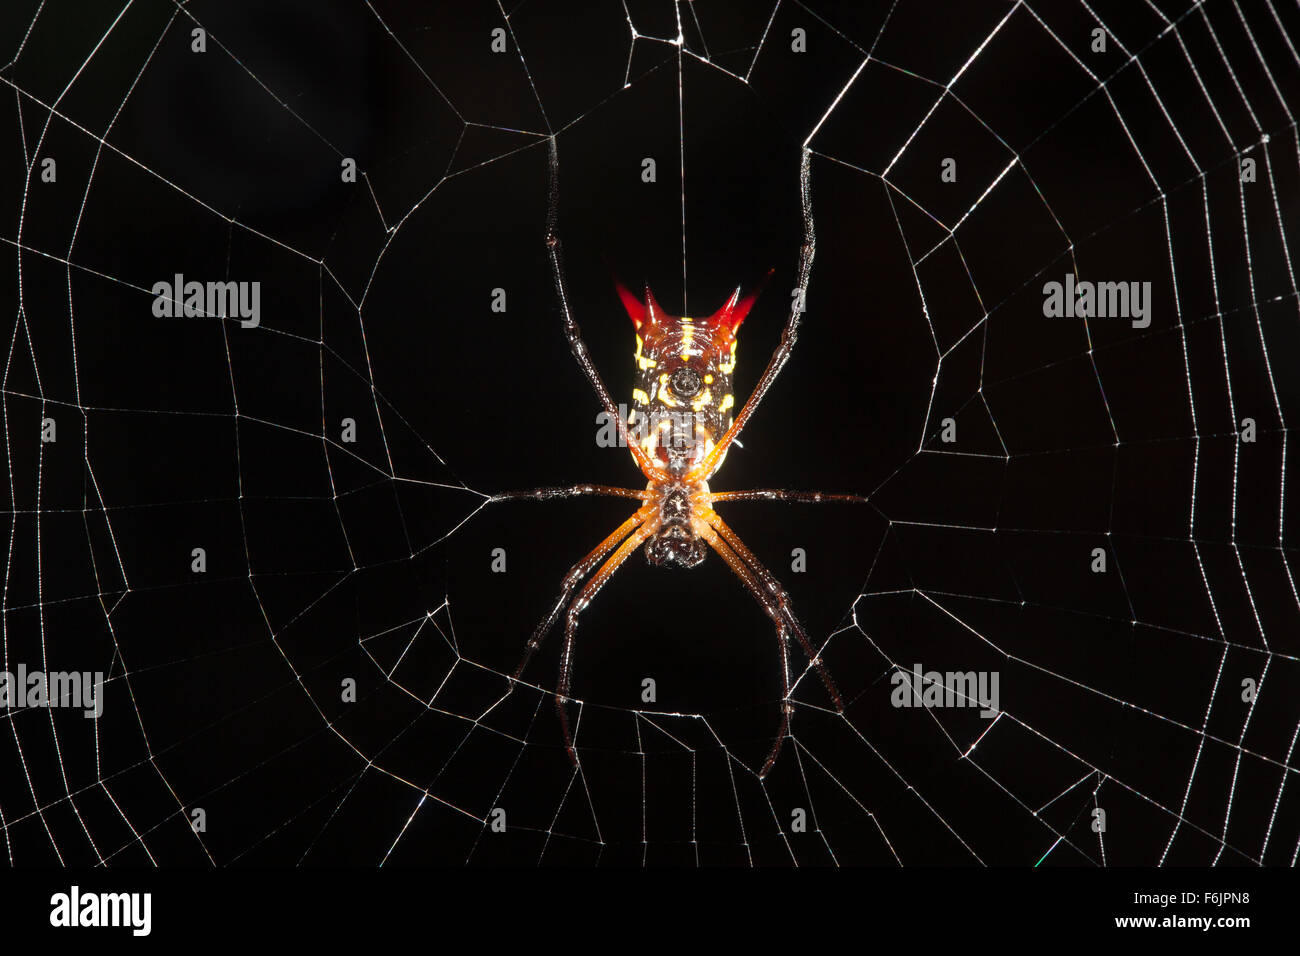 A colorful spiny orb-weaving spider waits for prey at the center of its web. - Stock Image